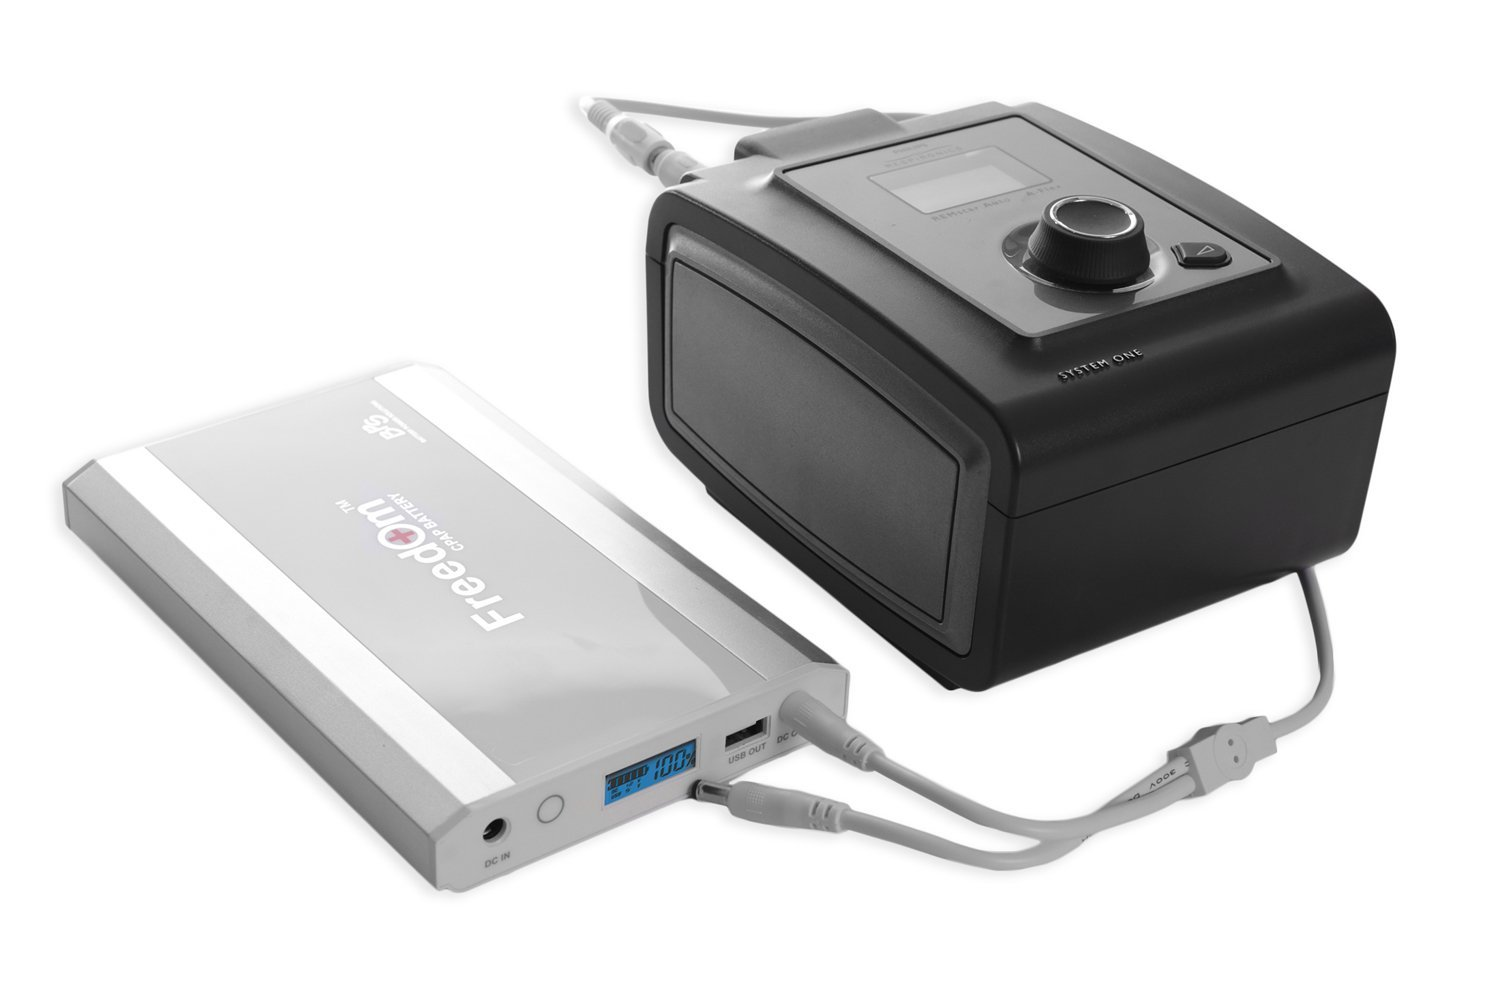 Best CPAP Battery Backup: Our Top 3 Recommendations for 2018